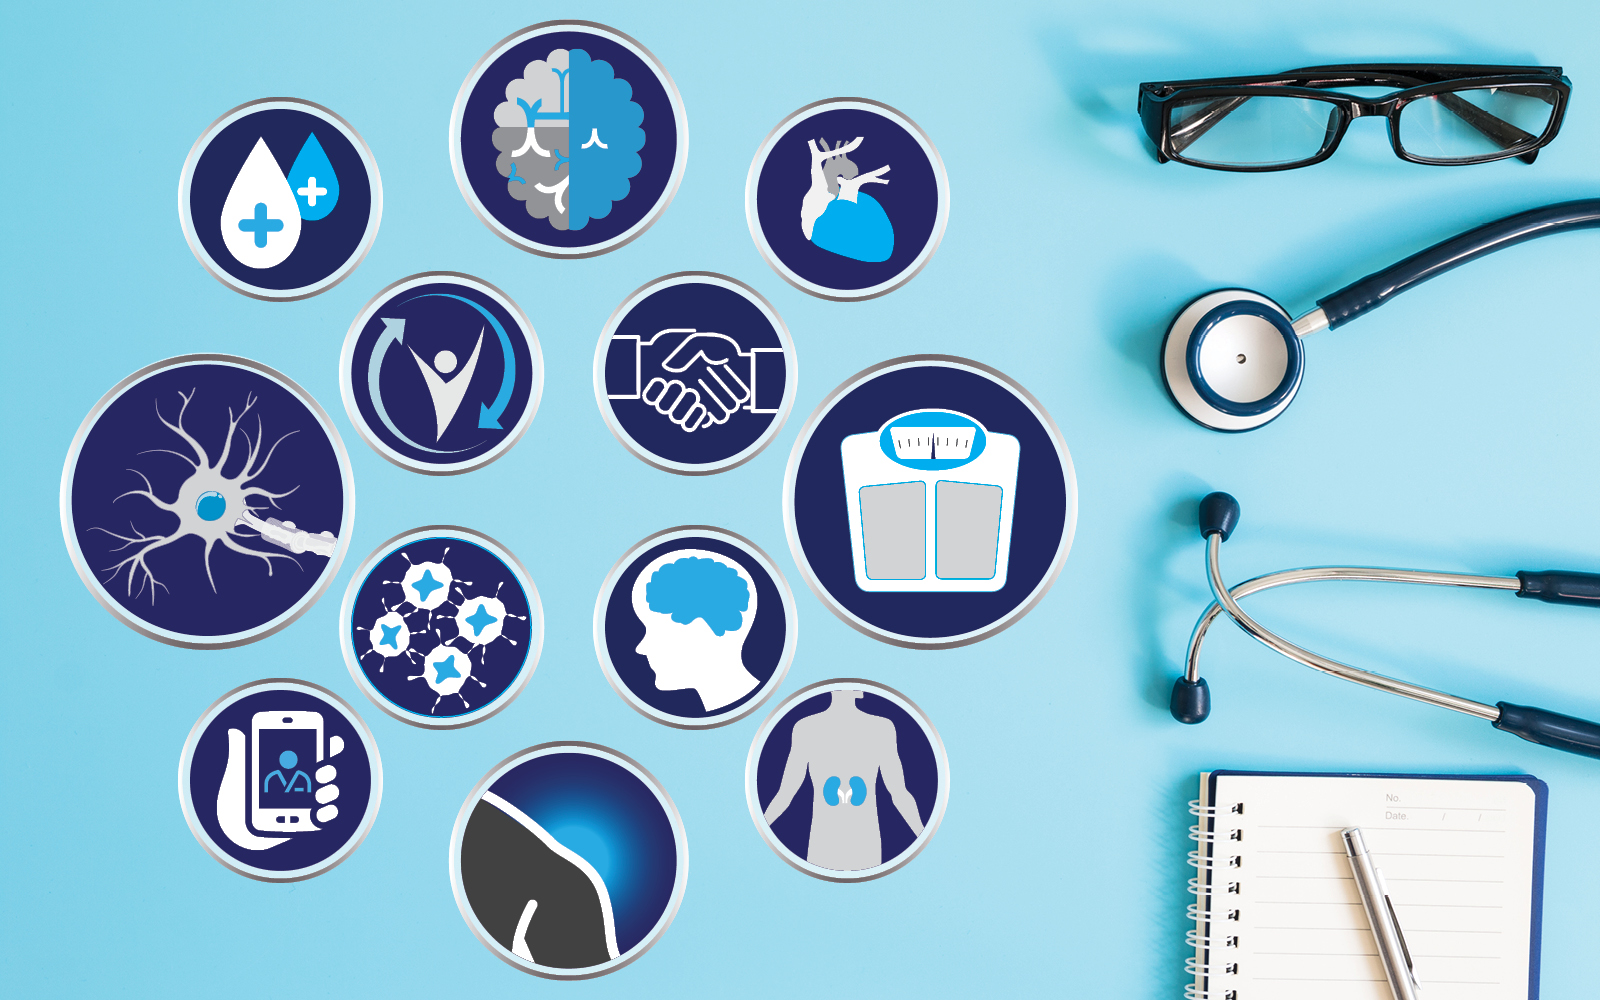 A collection of icons to signify several of the topic that PCORI-funded research projects cover, such as diabetes, mental and behavioral health, cardiovascular disease, multiple sclerosis, shared decision making, obesity, cancer, telehealth and kidney disease. The graphic also includes a pair of reading glasses, a physician stethoscope, and a notepad and pen.